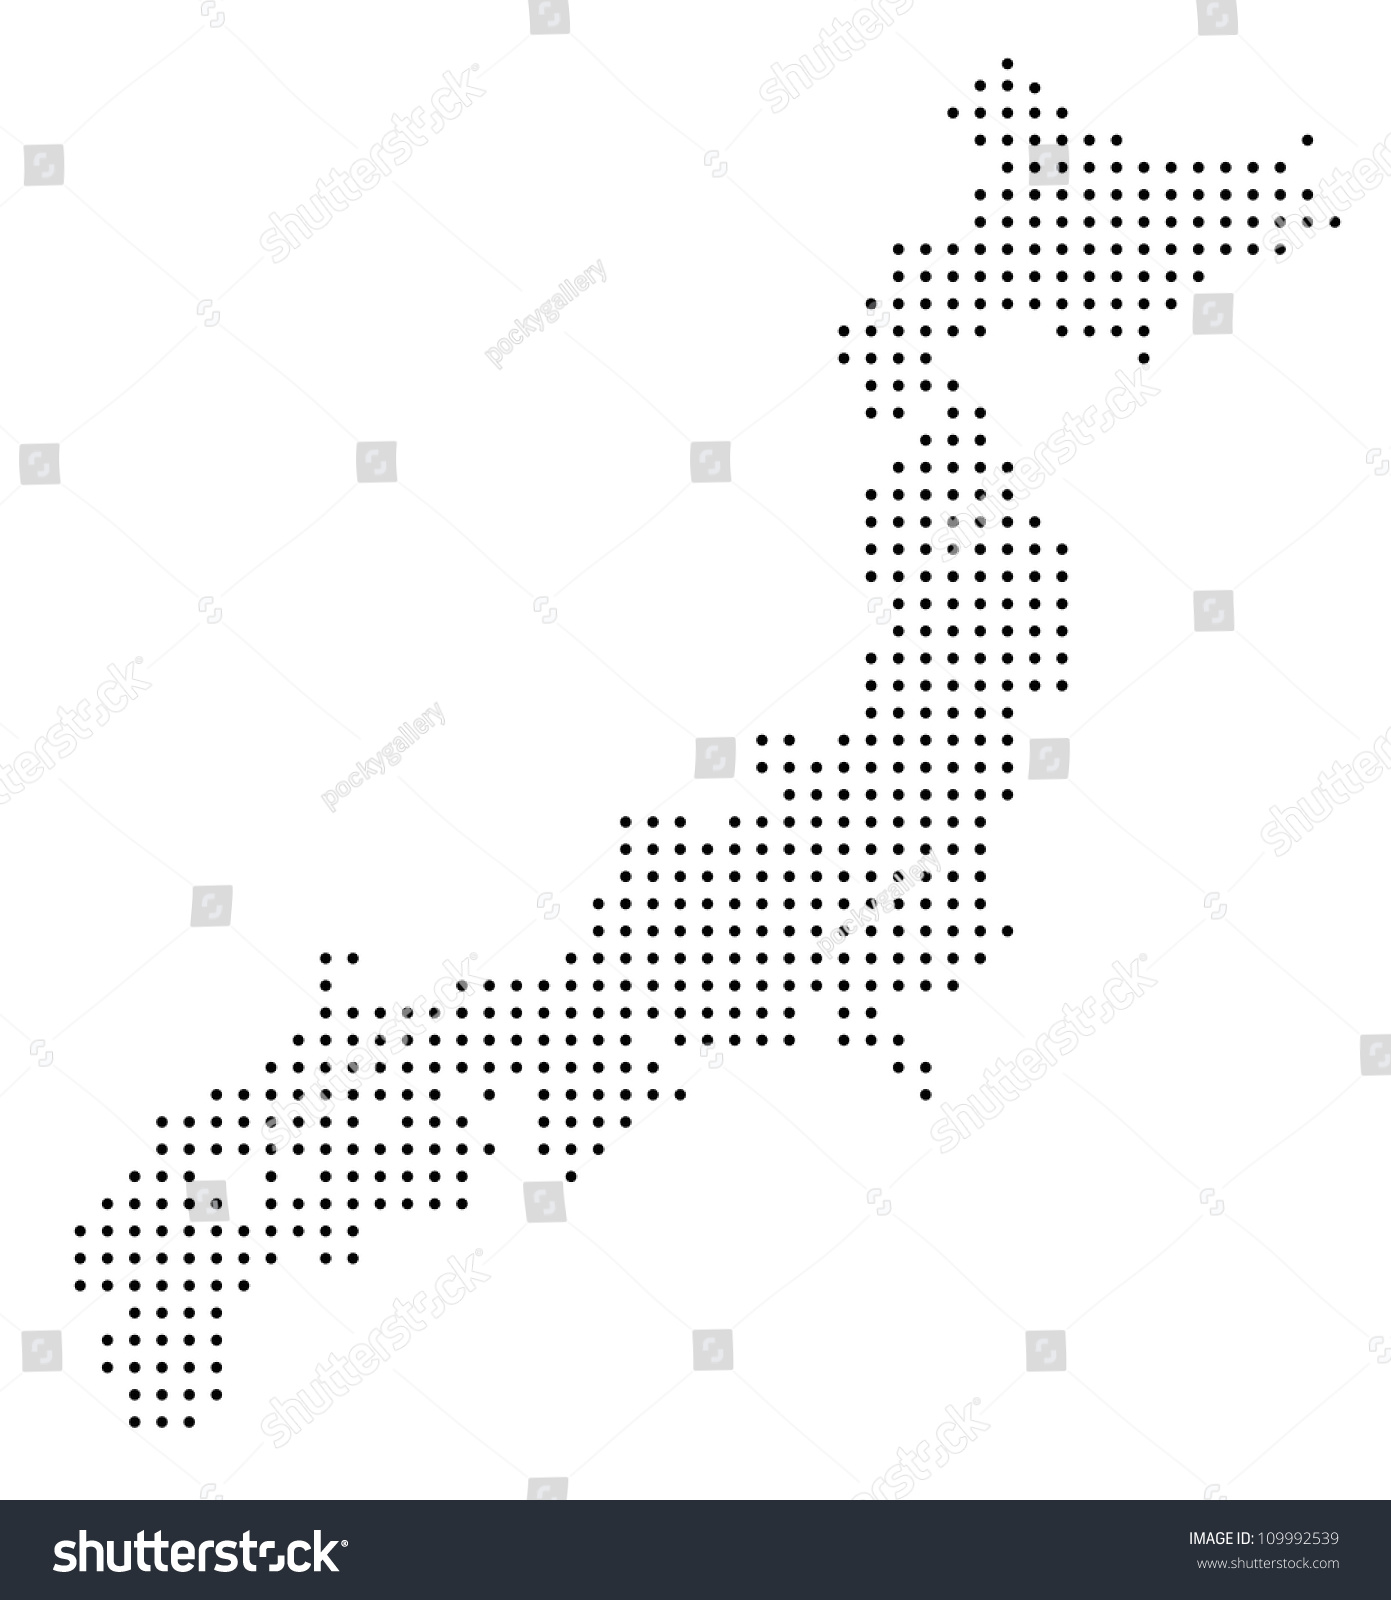 Dotted Japan Map Stock Vector (Royalty Free) 109992539 - Shutterstock